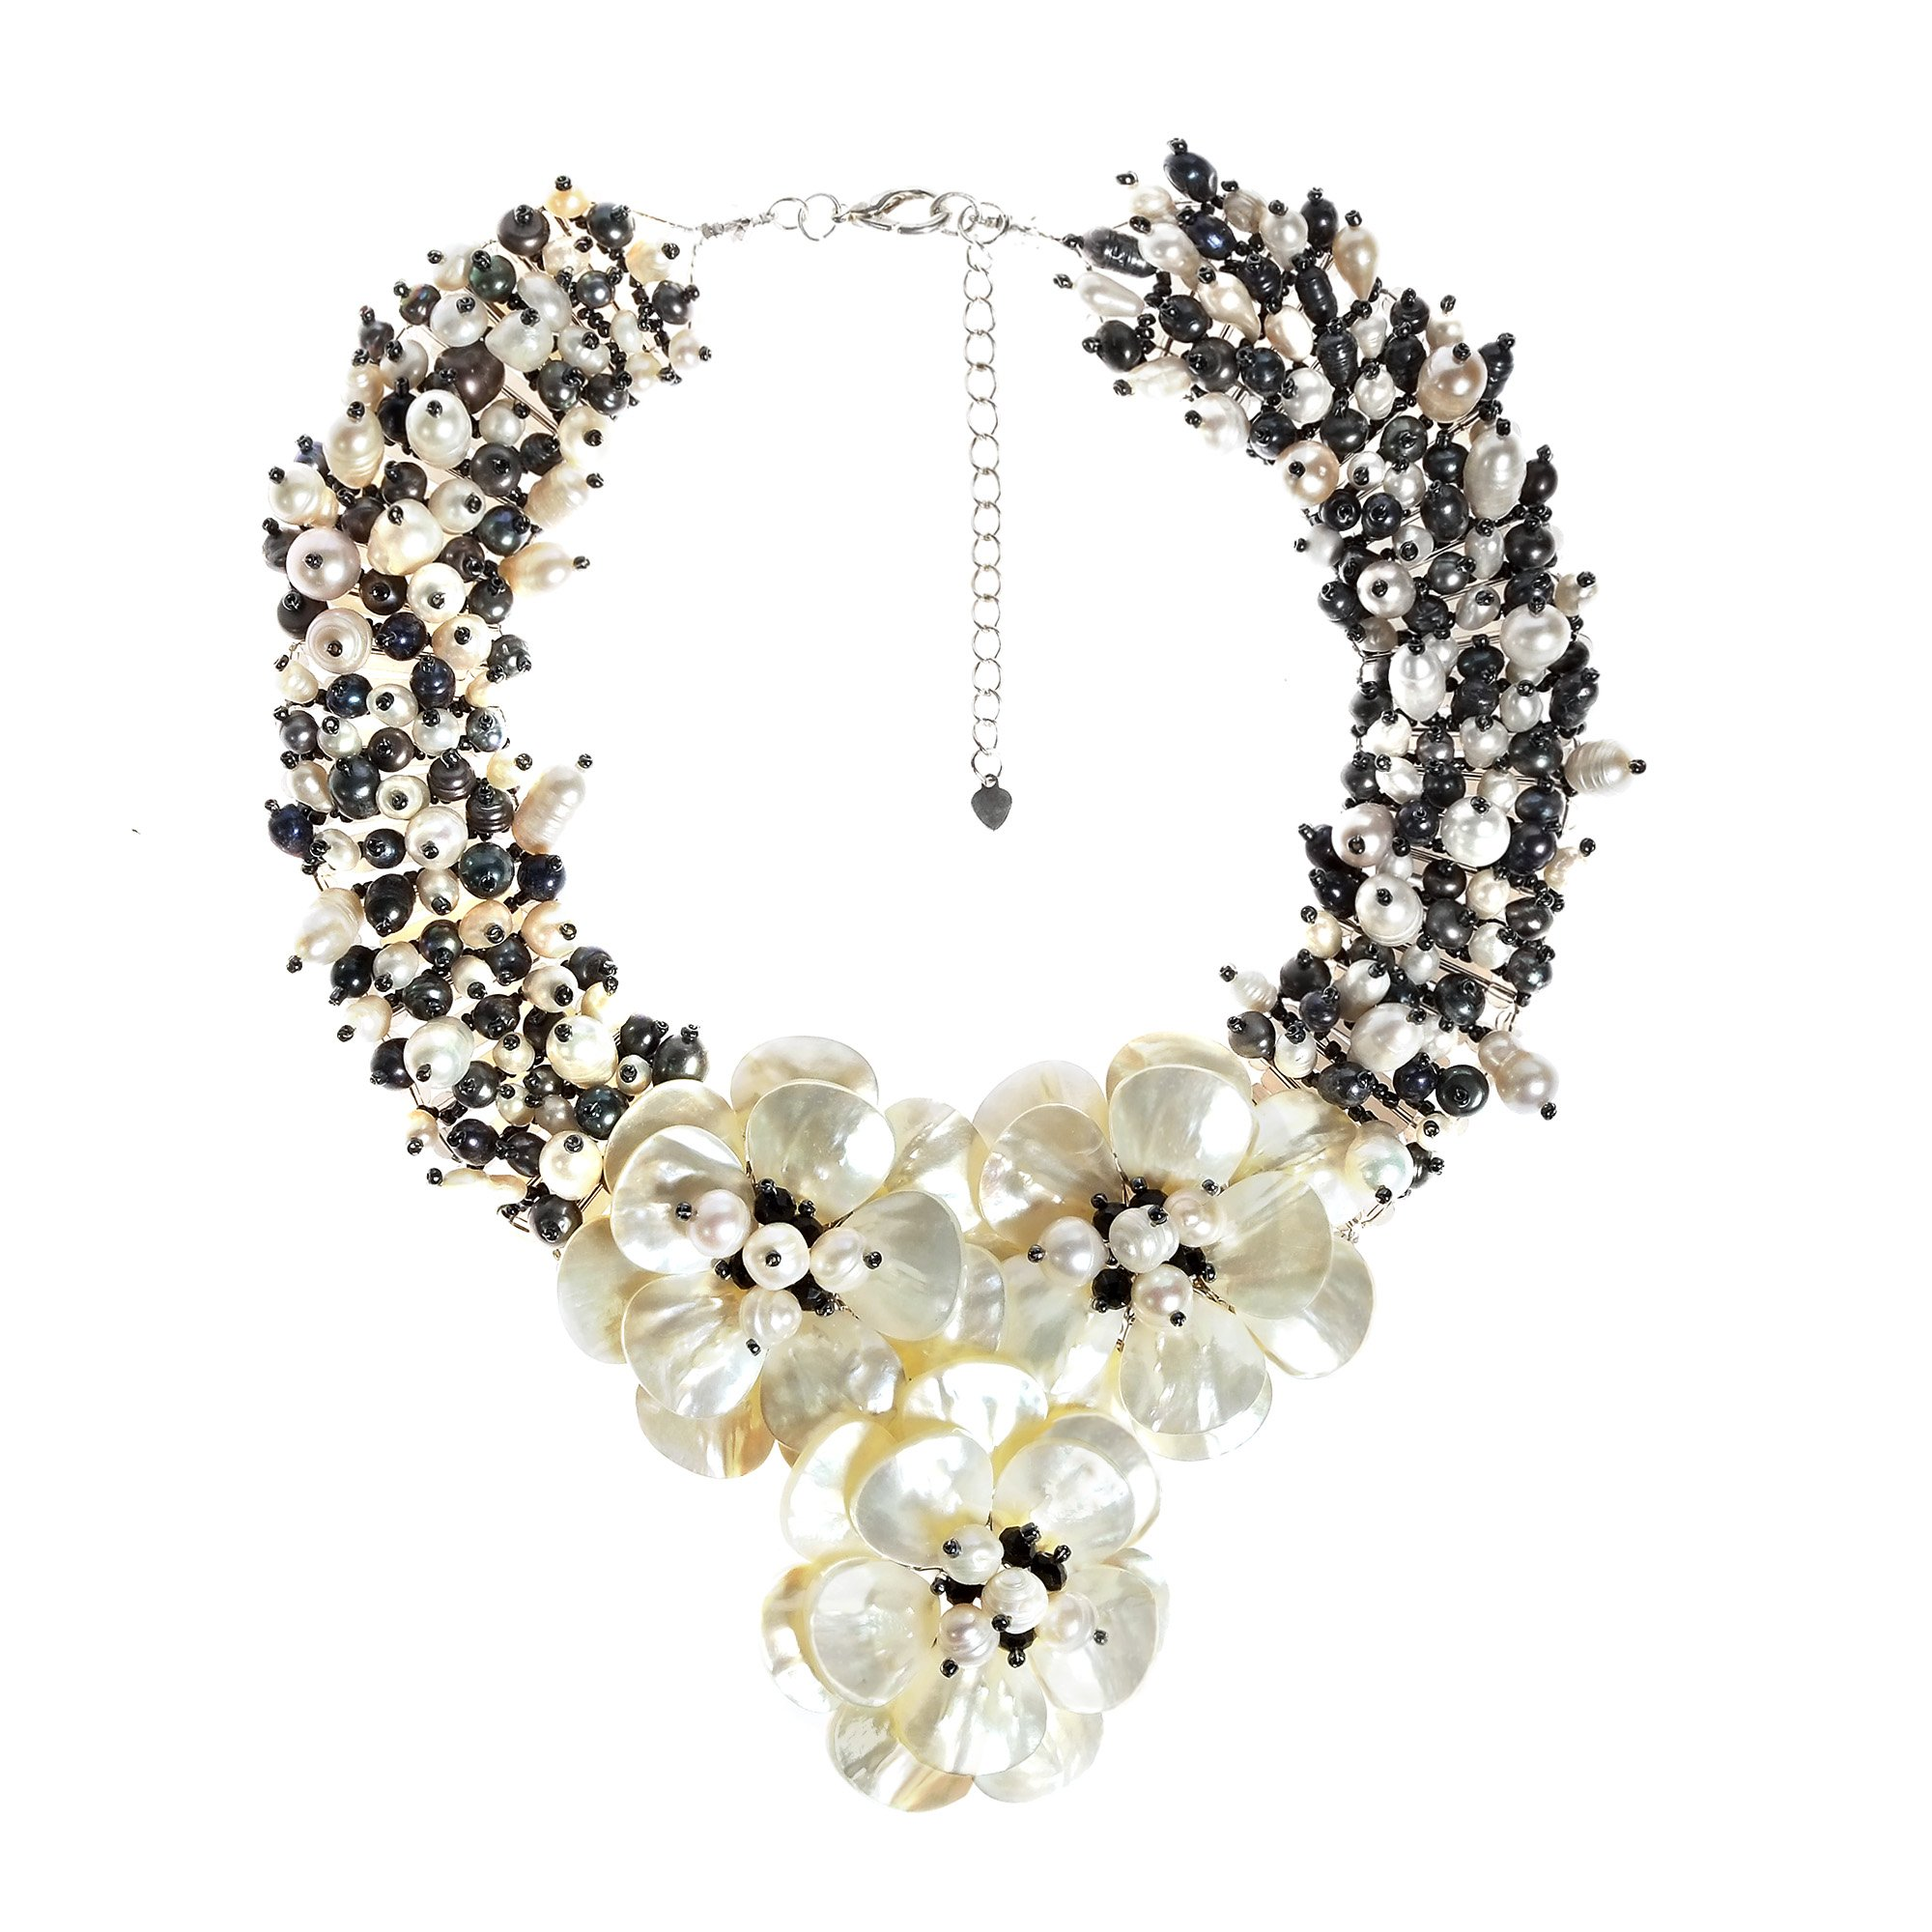 Midnight Floral Mother of Pearl and Cultured Freshwater Pearl Daisy Necklace by AeraVida